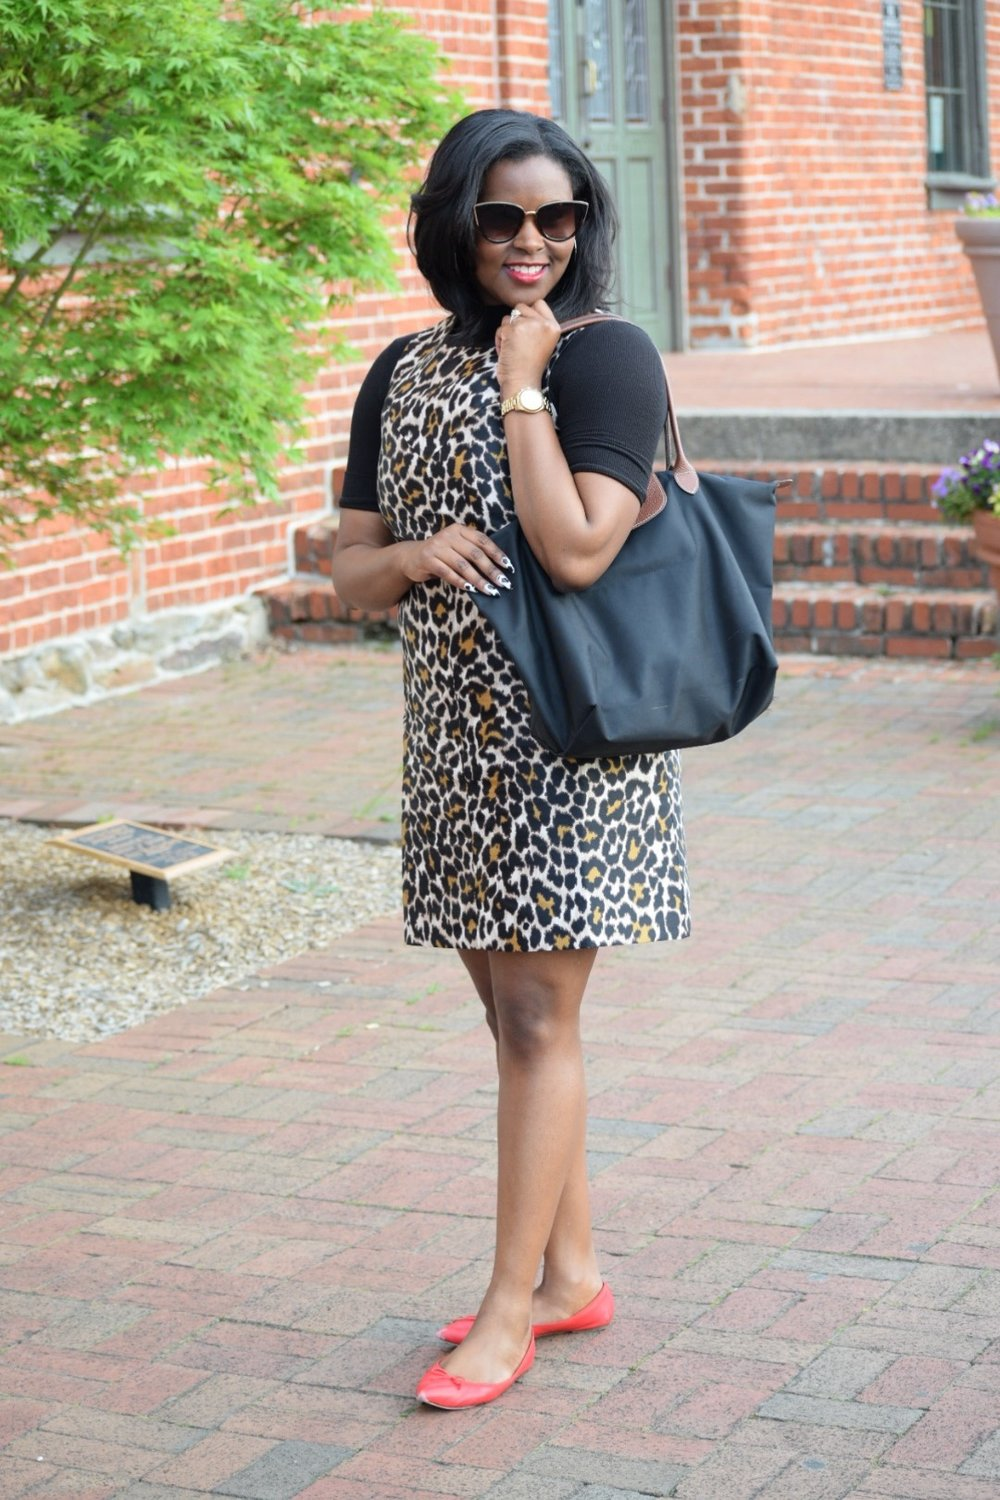 J Crew Cheetah Dress (old, but I love this top  here ),J Crew Flats ( here ), American Apparel Turtleneck (similar  here ), Longchamp Purse ( here ), Nordstrom Sunnies (old)